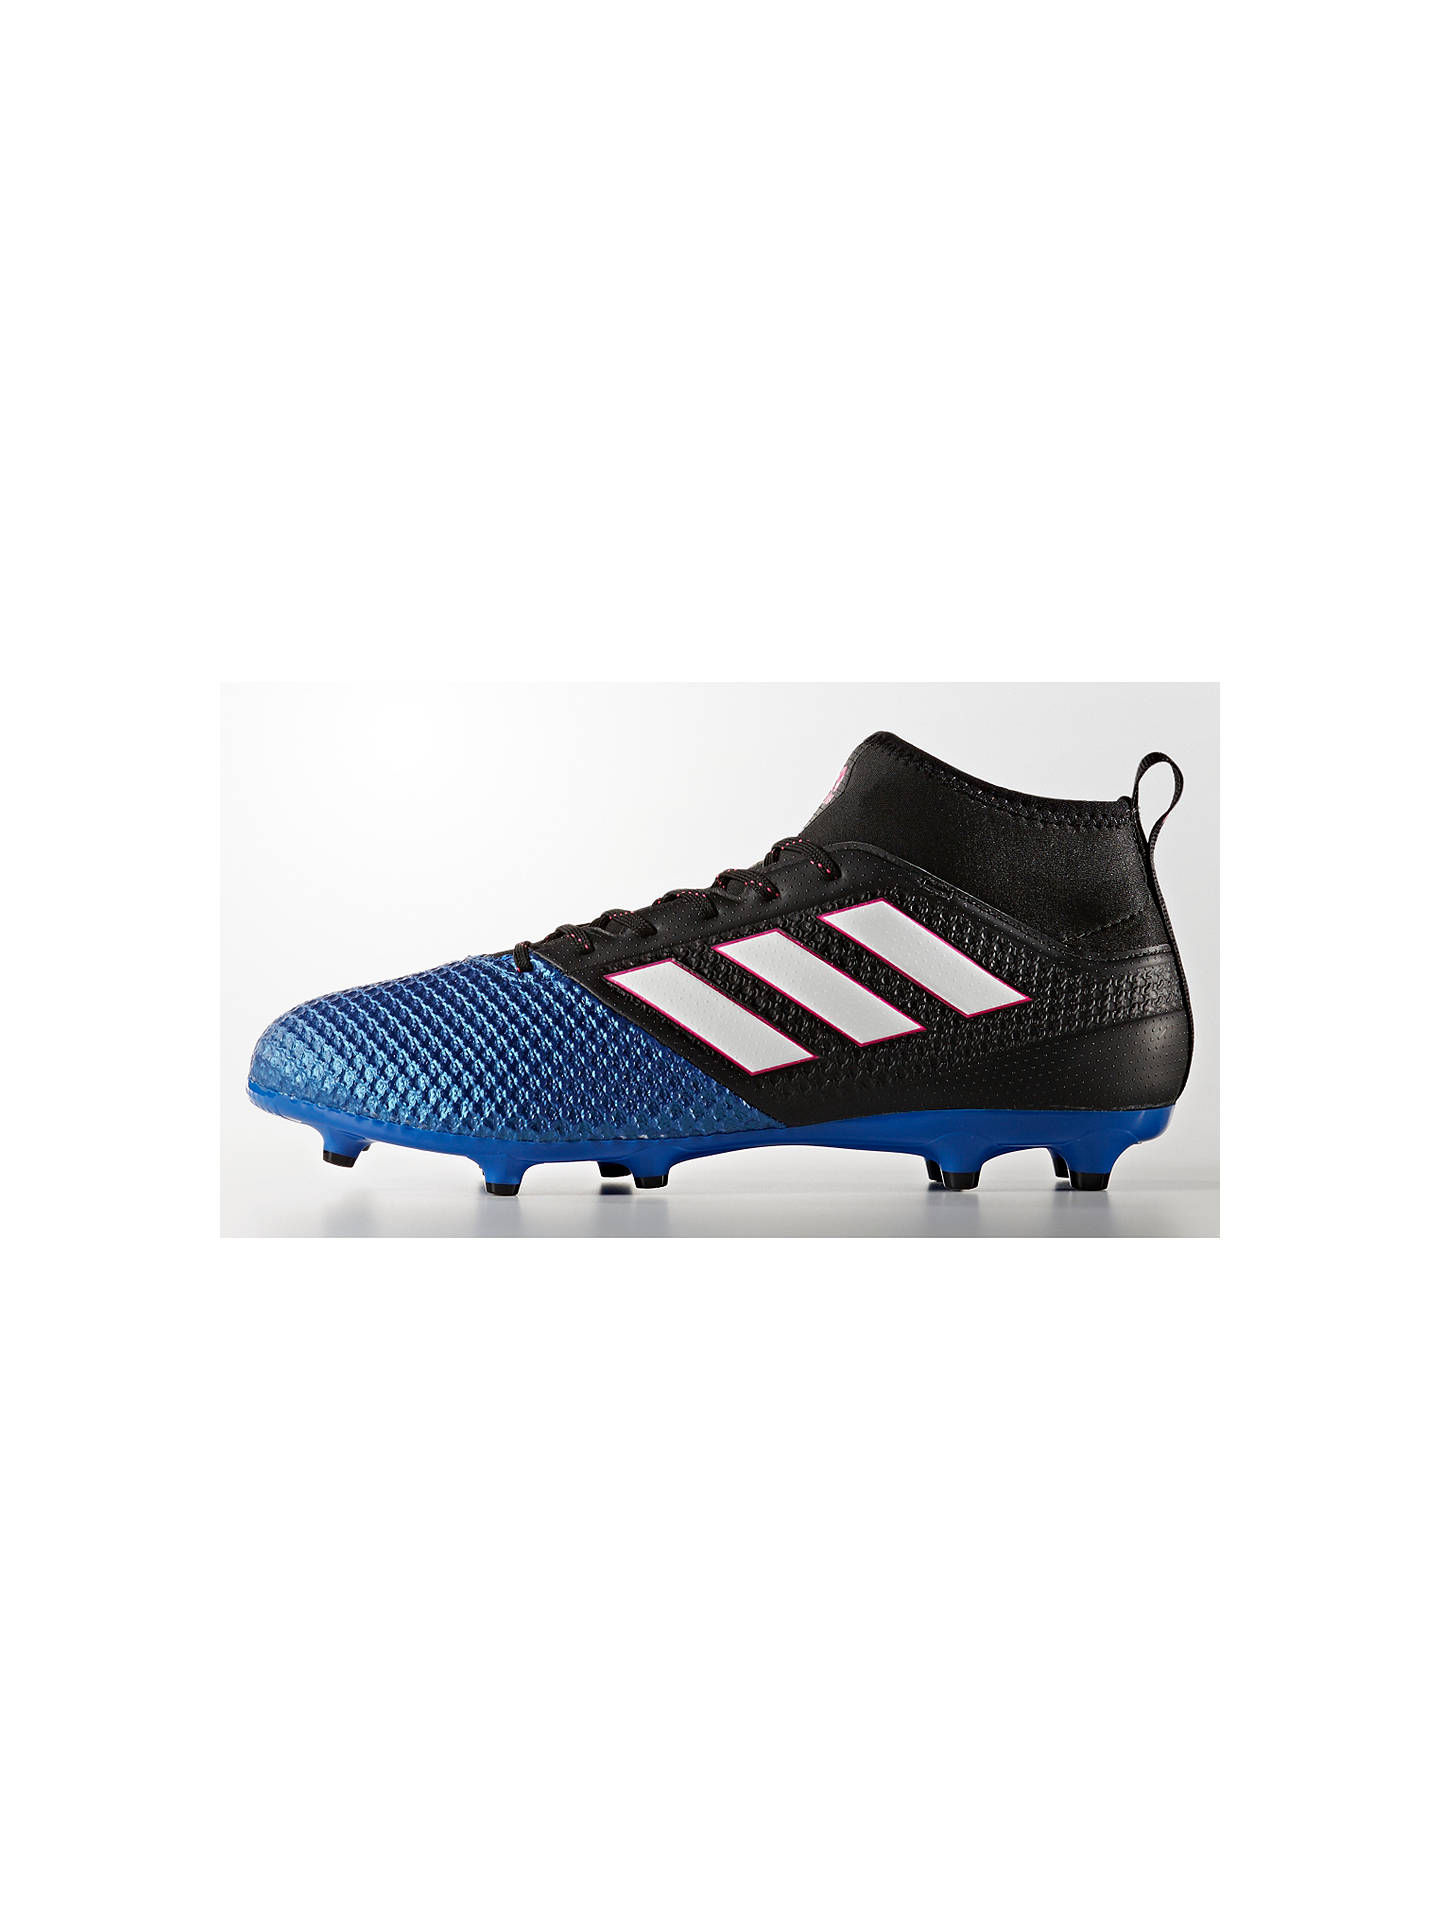 7028801c ... Buy Adidas Ace 17.3 Primemesh Men's Football Boots, Black/Blue, 7  Online at ...